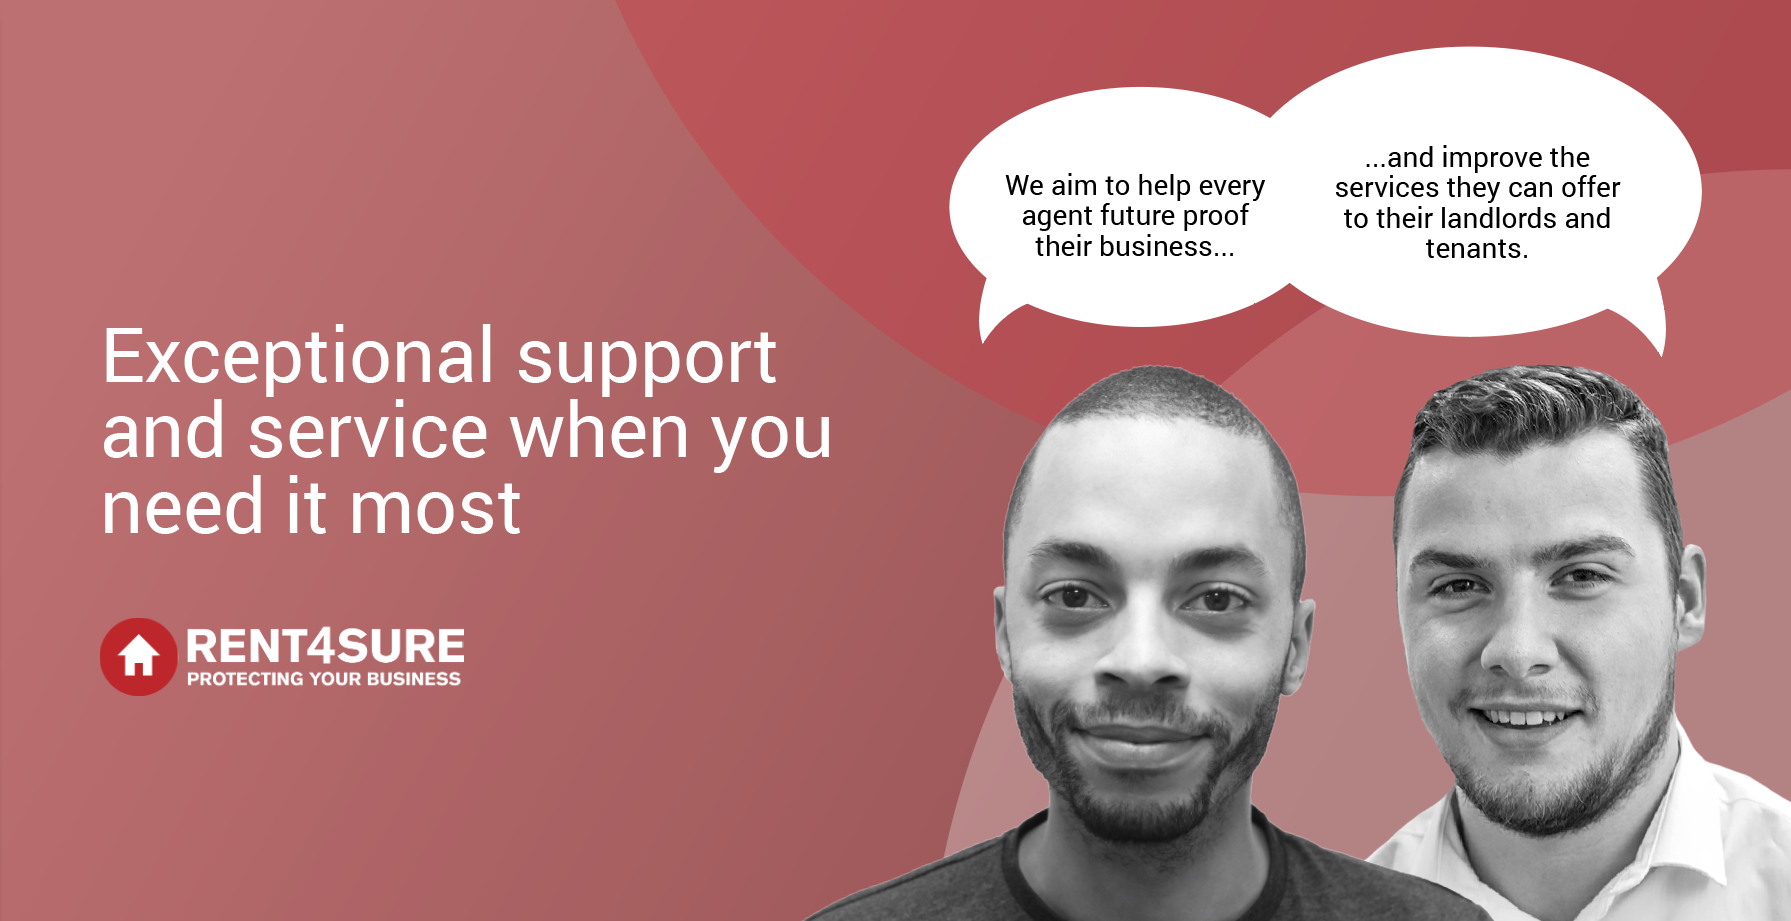 Exceptional support and service when you need it most